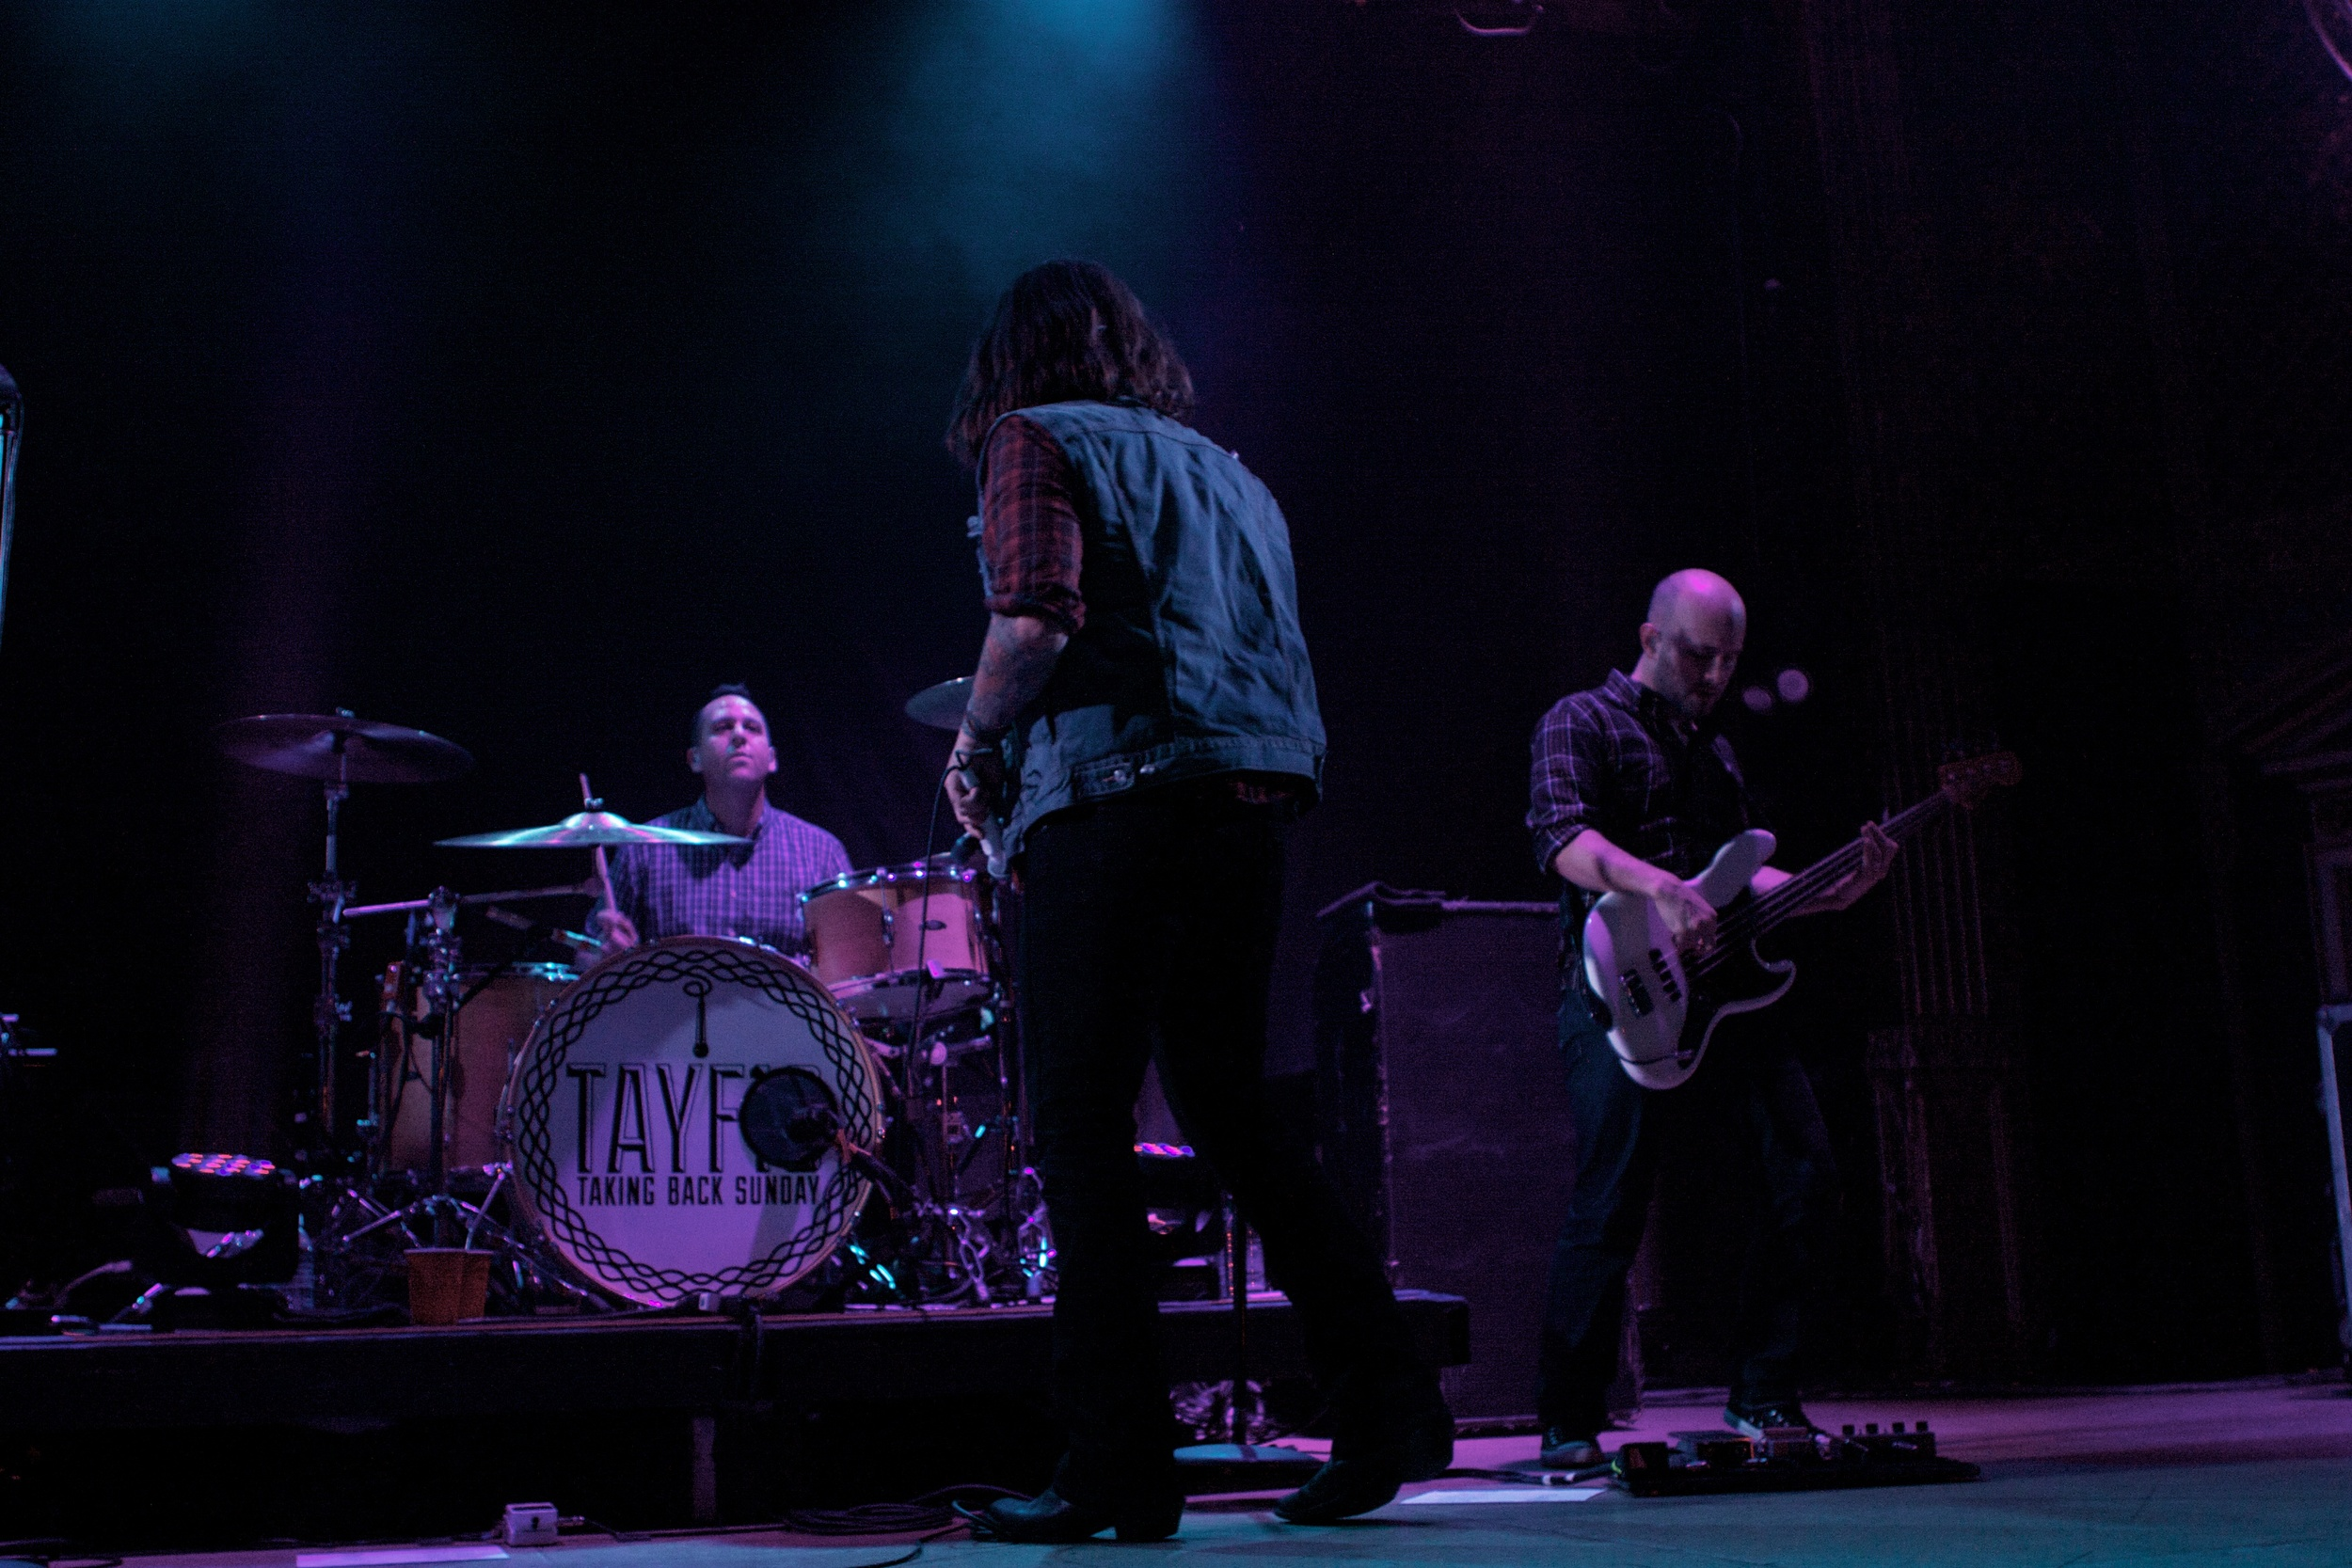 Taking Back Sunday played to a sold out Ogden crowd this past Sunday (Photo Credit: Matt Smith)